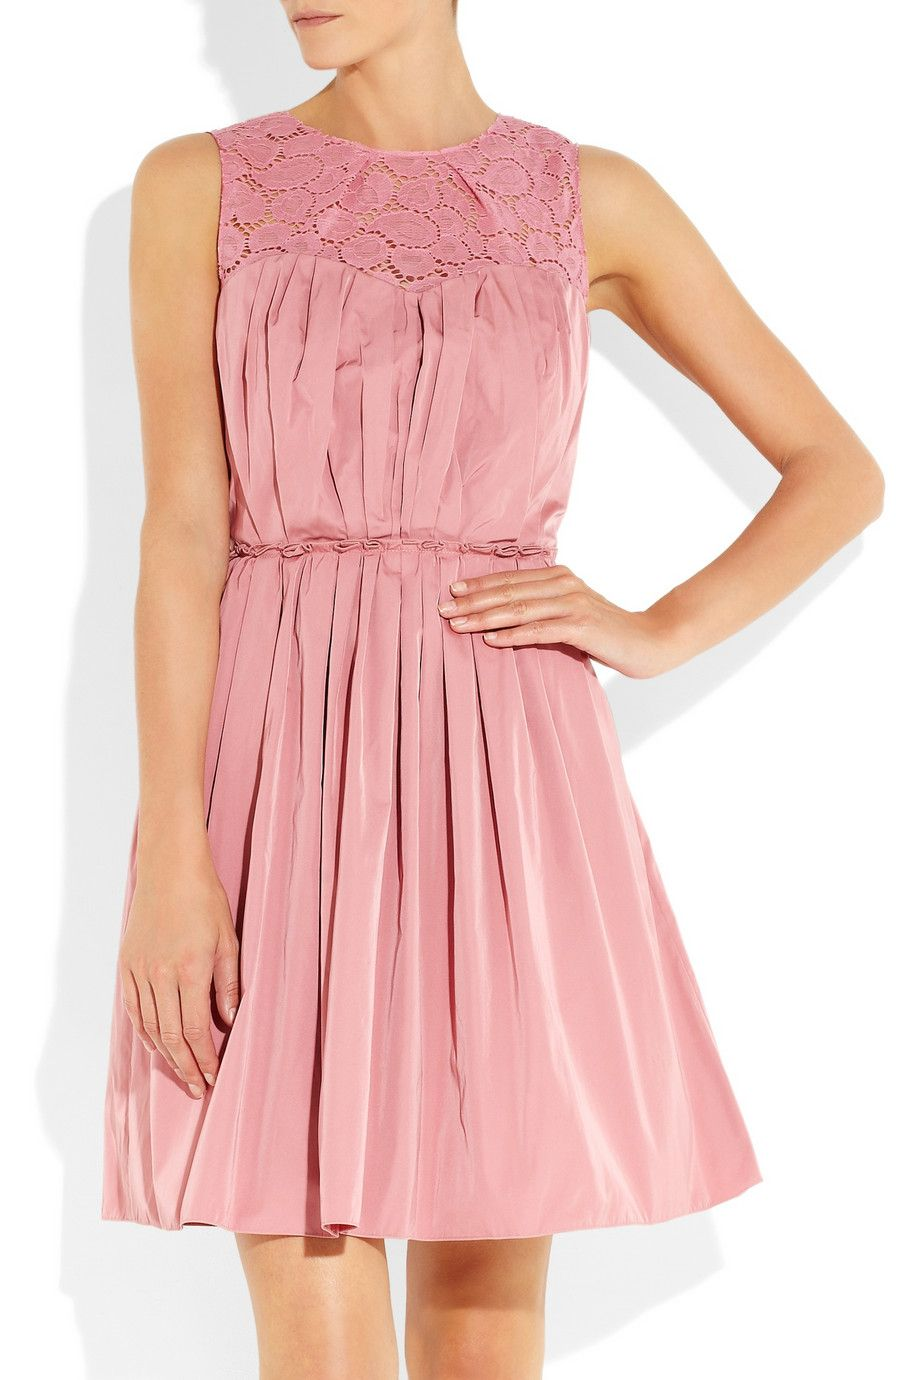 Nina Ricci | Taffeta and lace dress- luv the rose color and unique ...